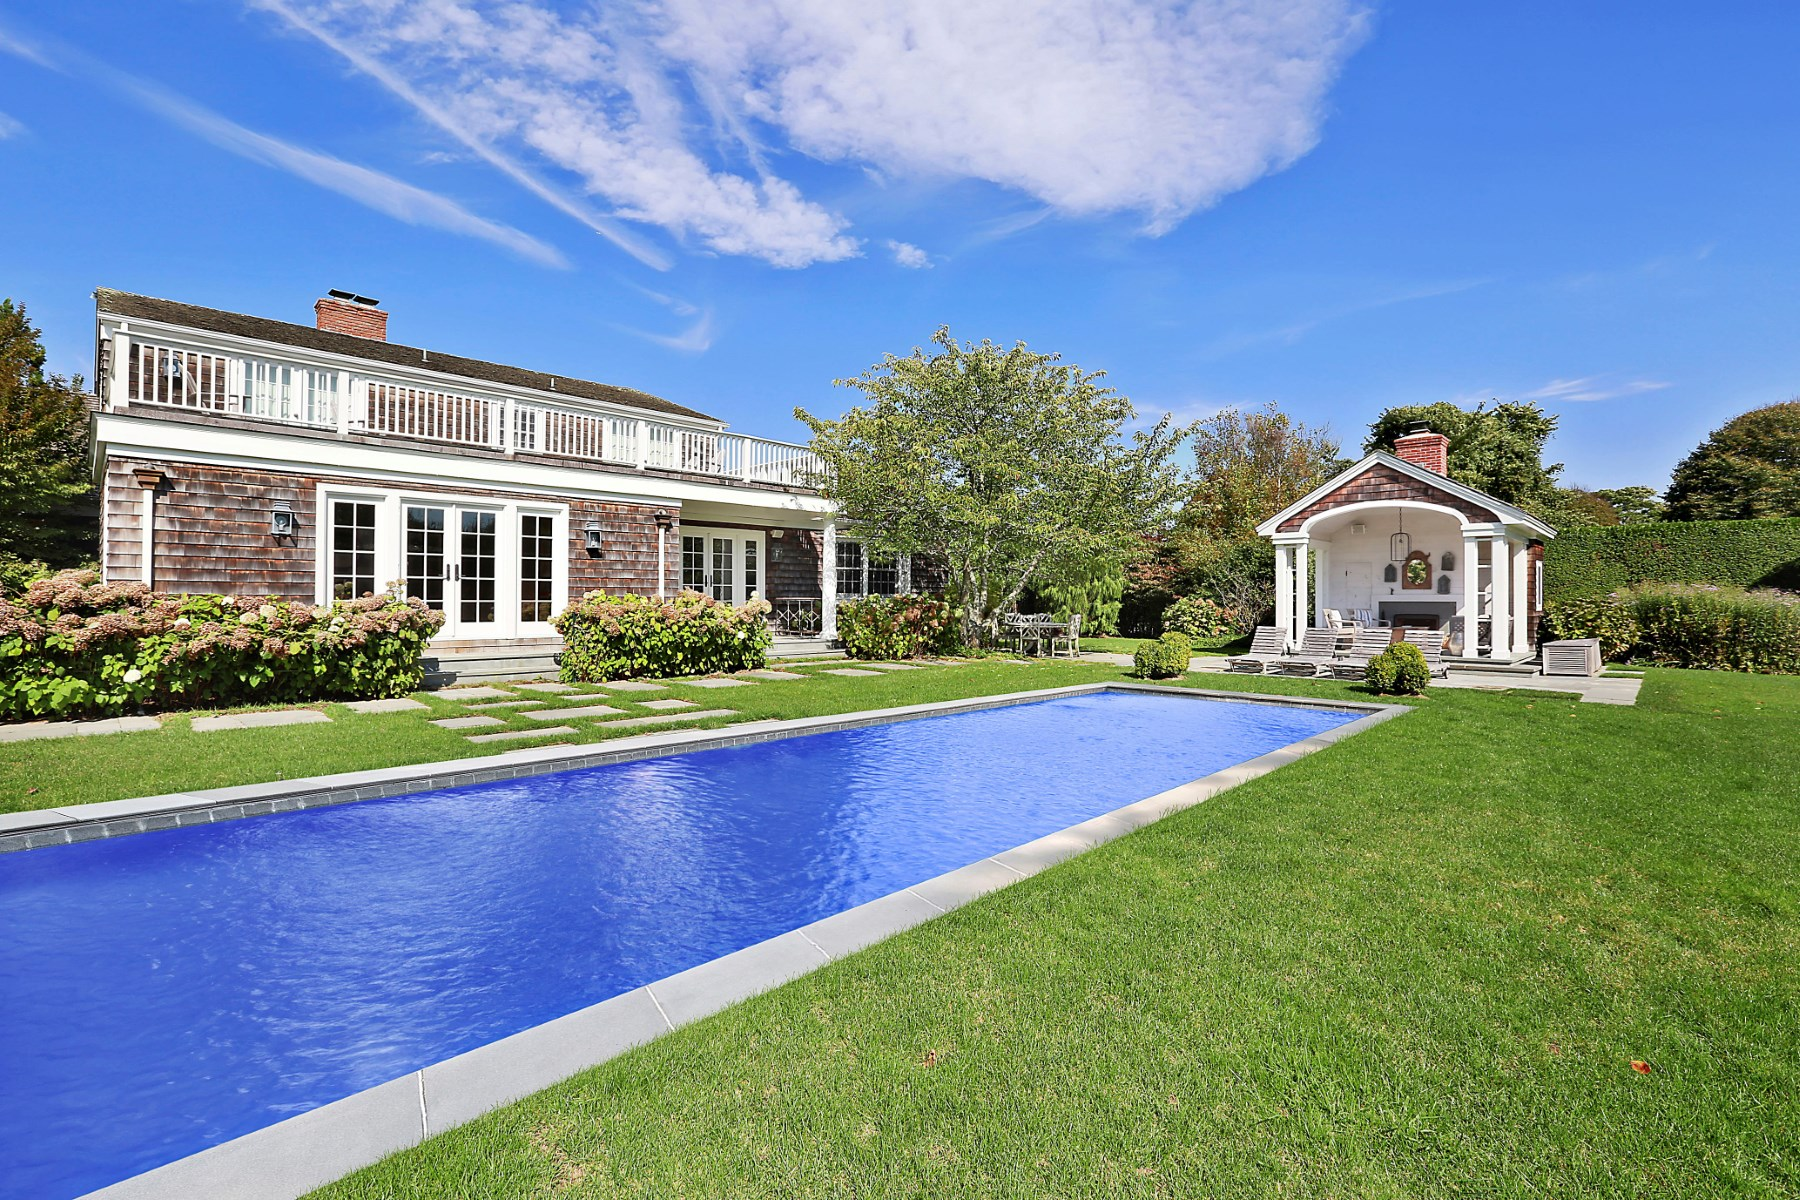 Casa Unifamiliar por un Alquiler en Summer on Further Lane East Hampton, Nueva York, 11937 Estados Unidos